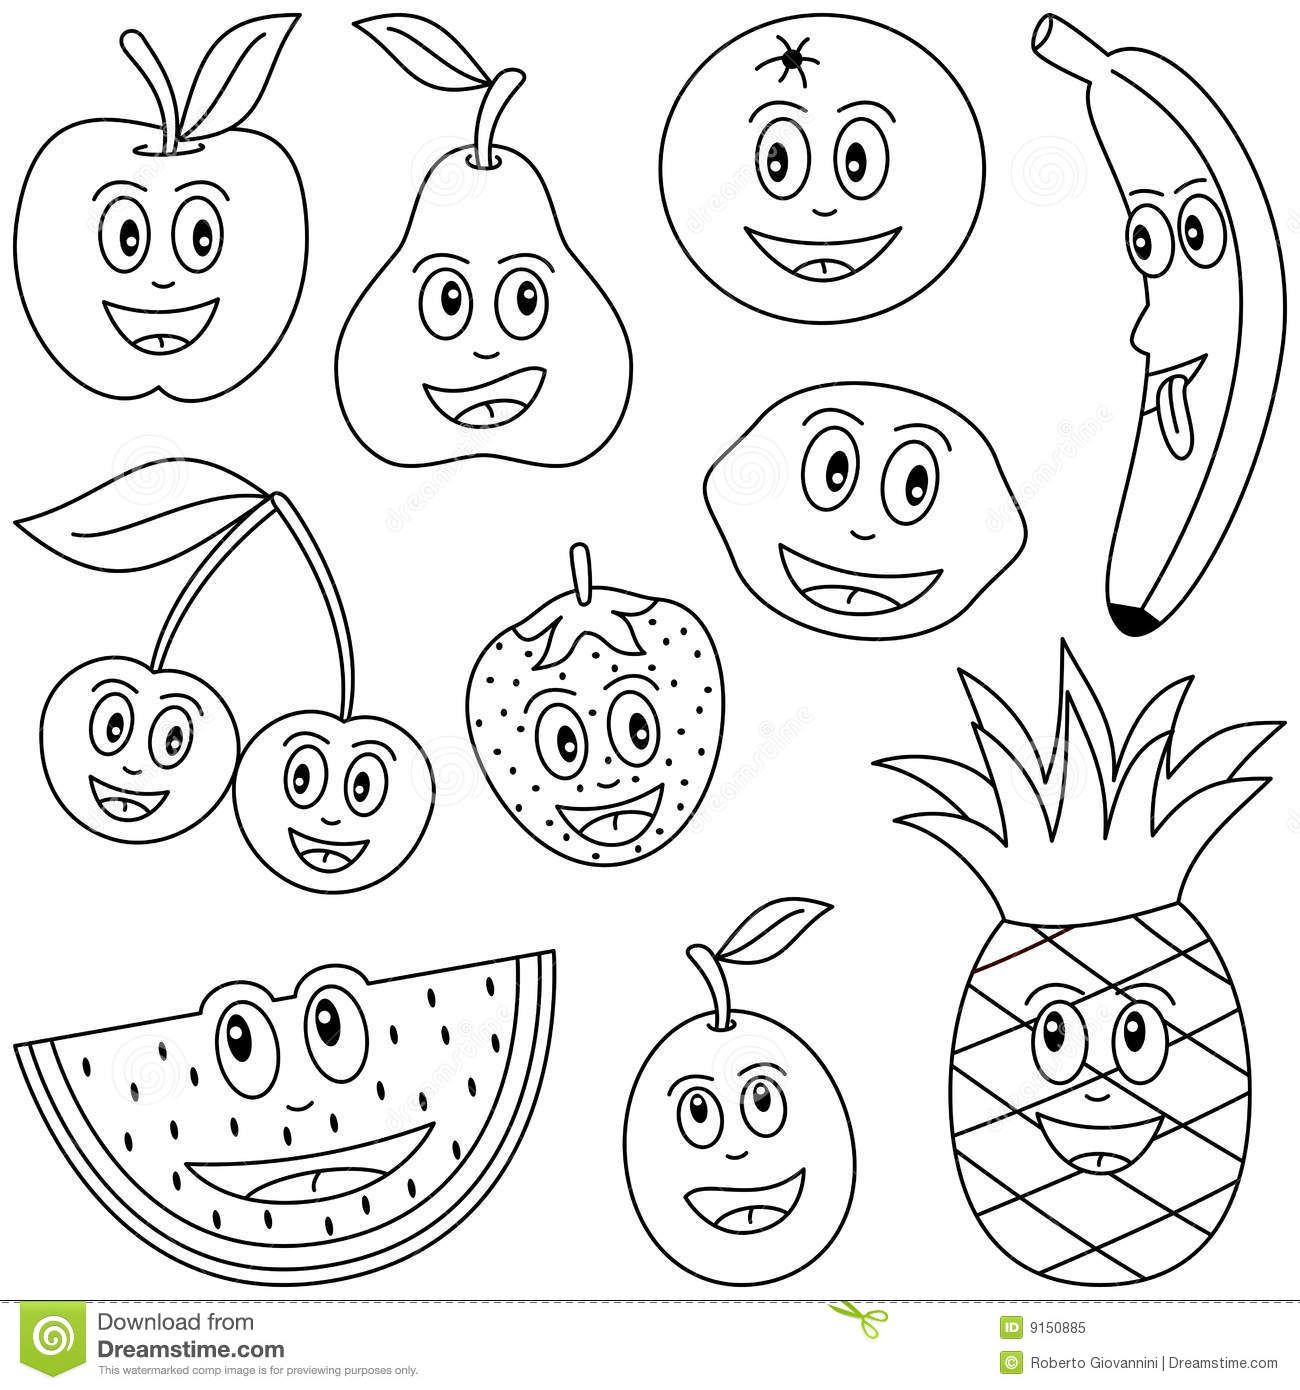 cartoon fruits coloring pages cartoon fruits coloring pages crafts and worksheets for coloring cartoon pages fruits